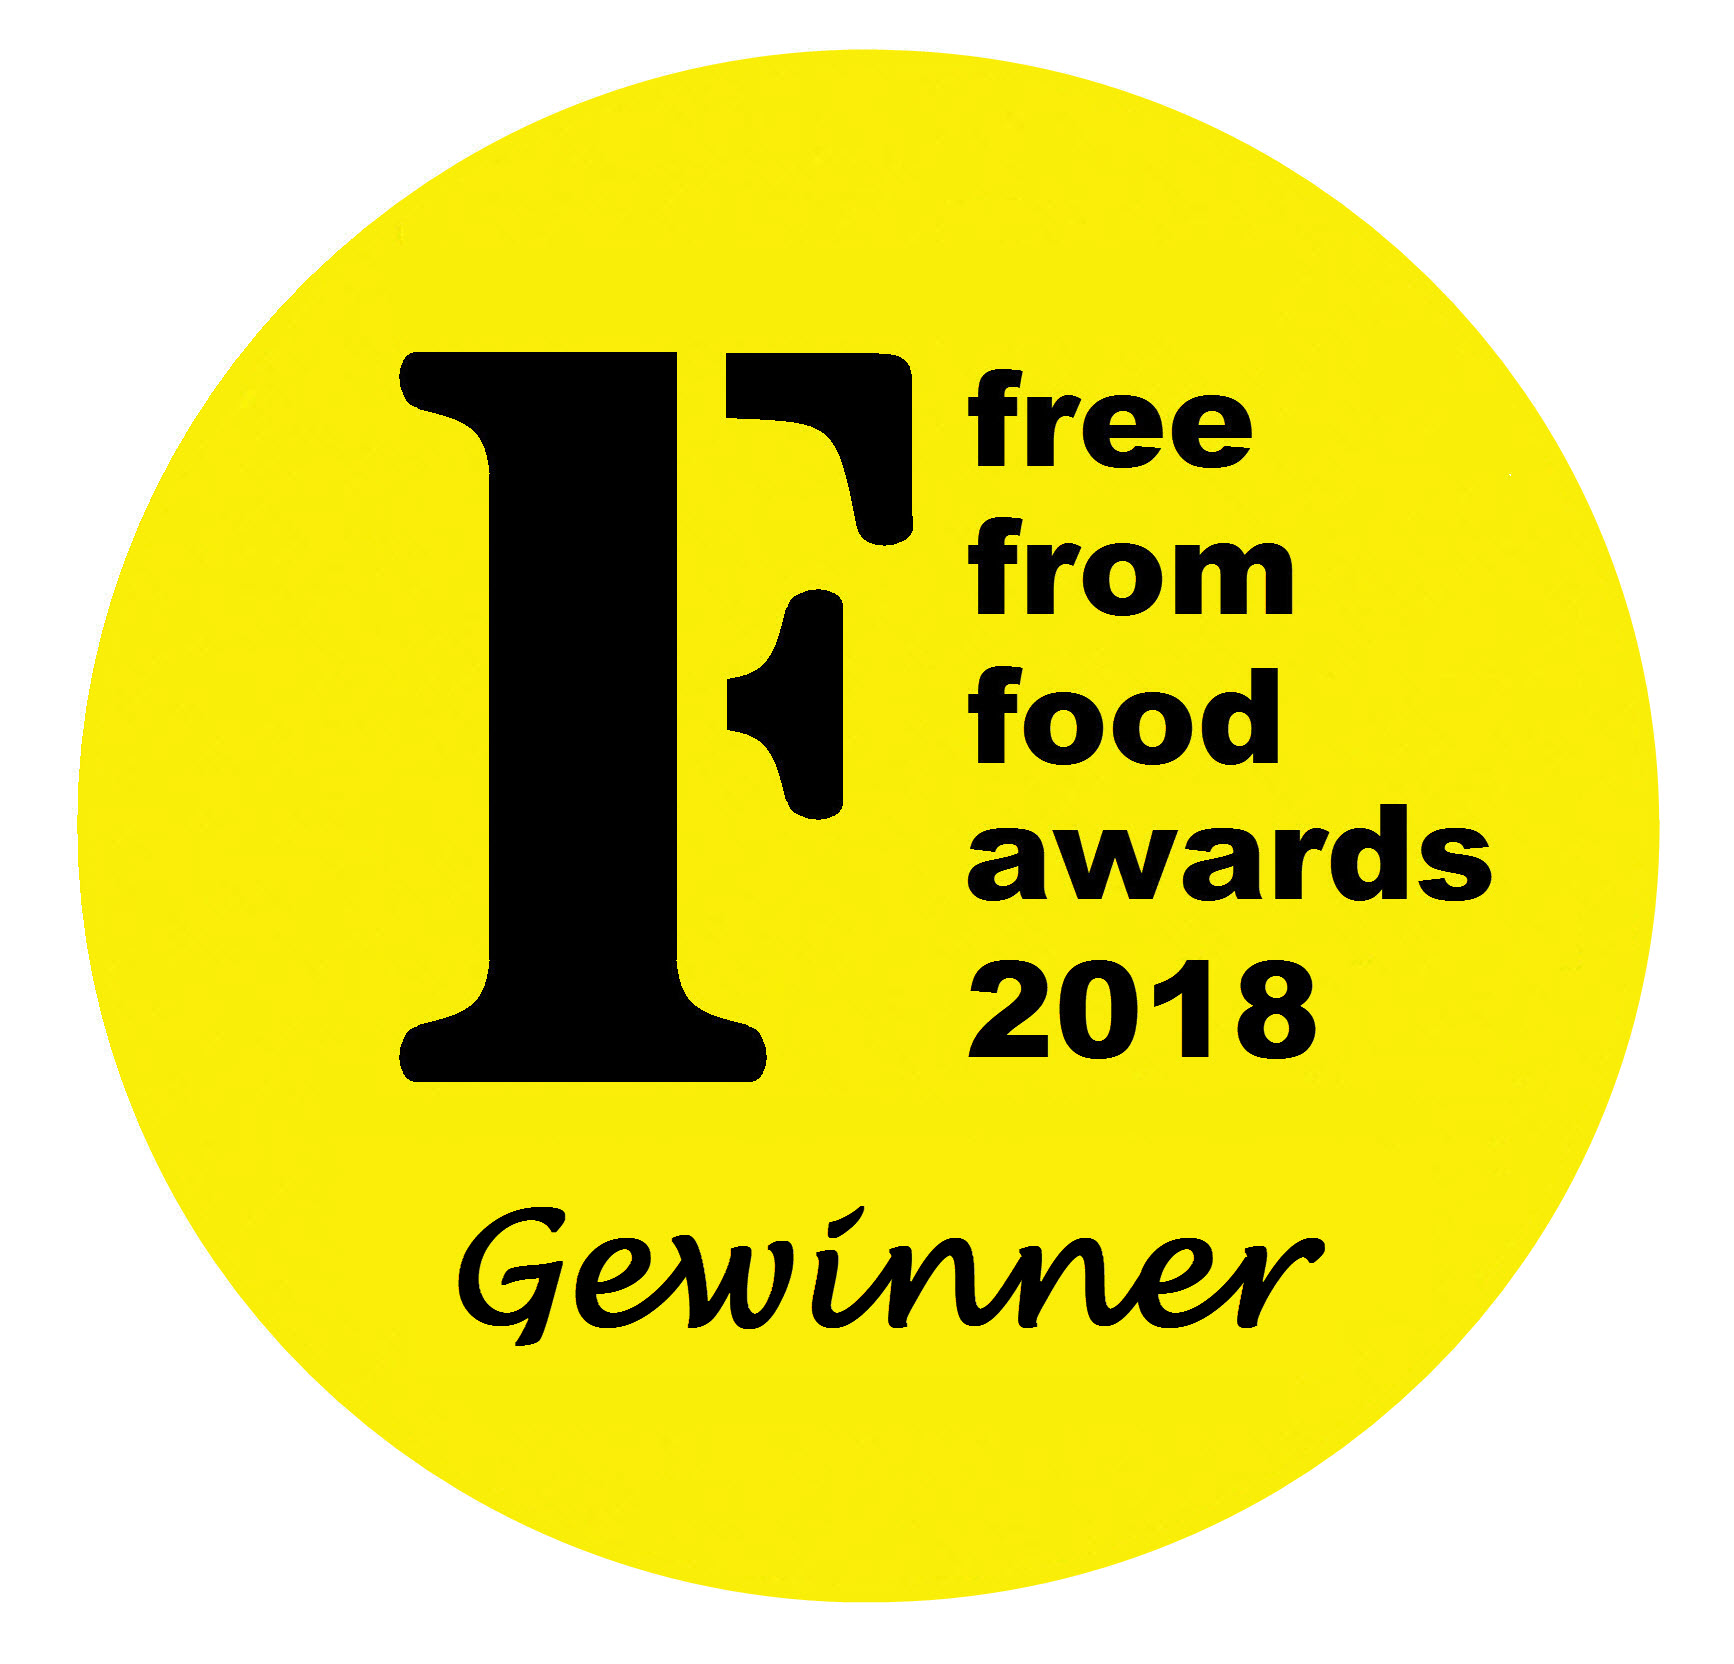 Gewinner Free From Food Awards 2018